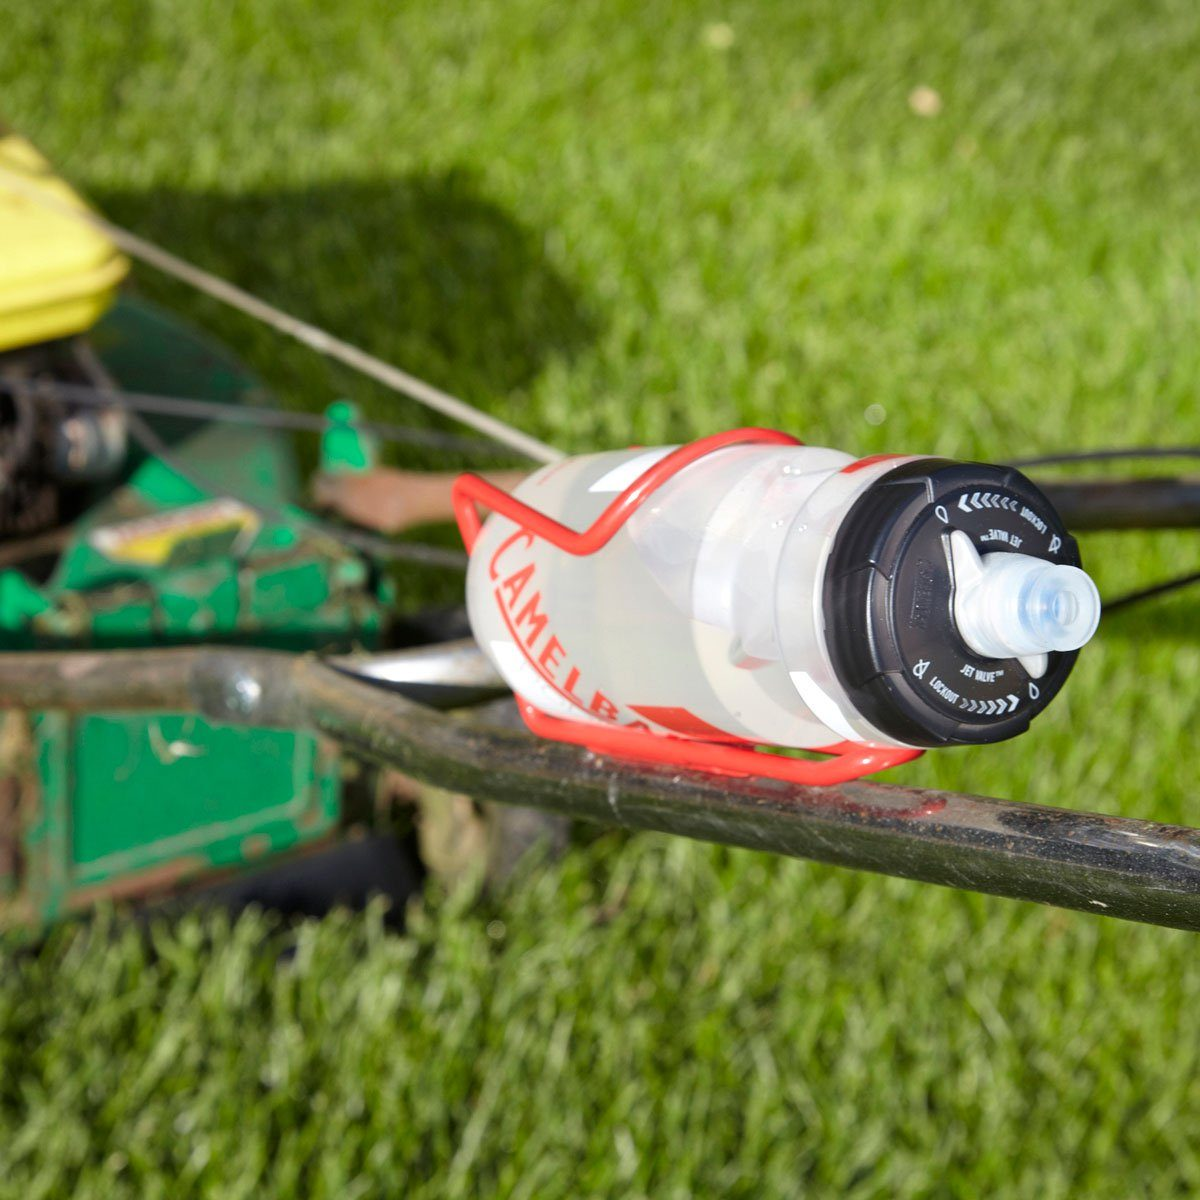 Water break on the go lawn mower